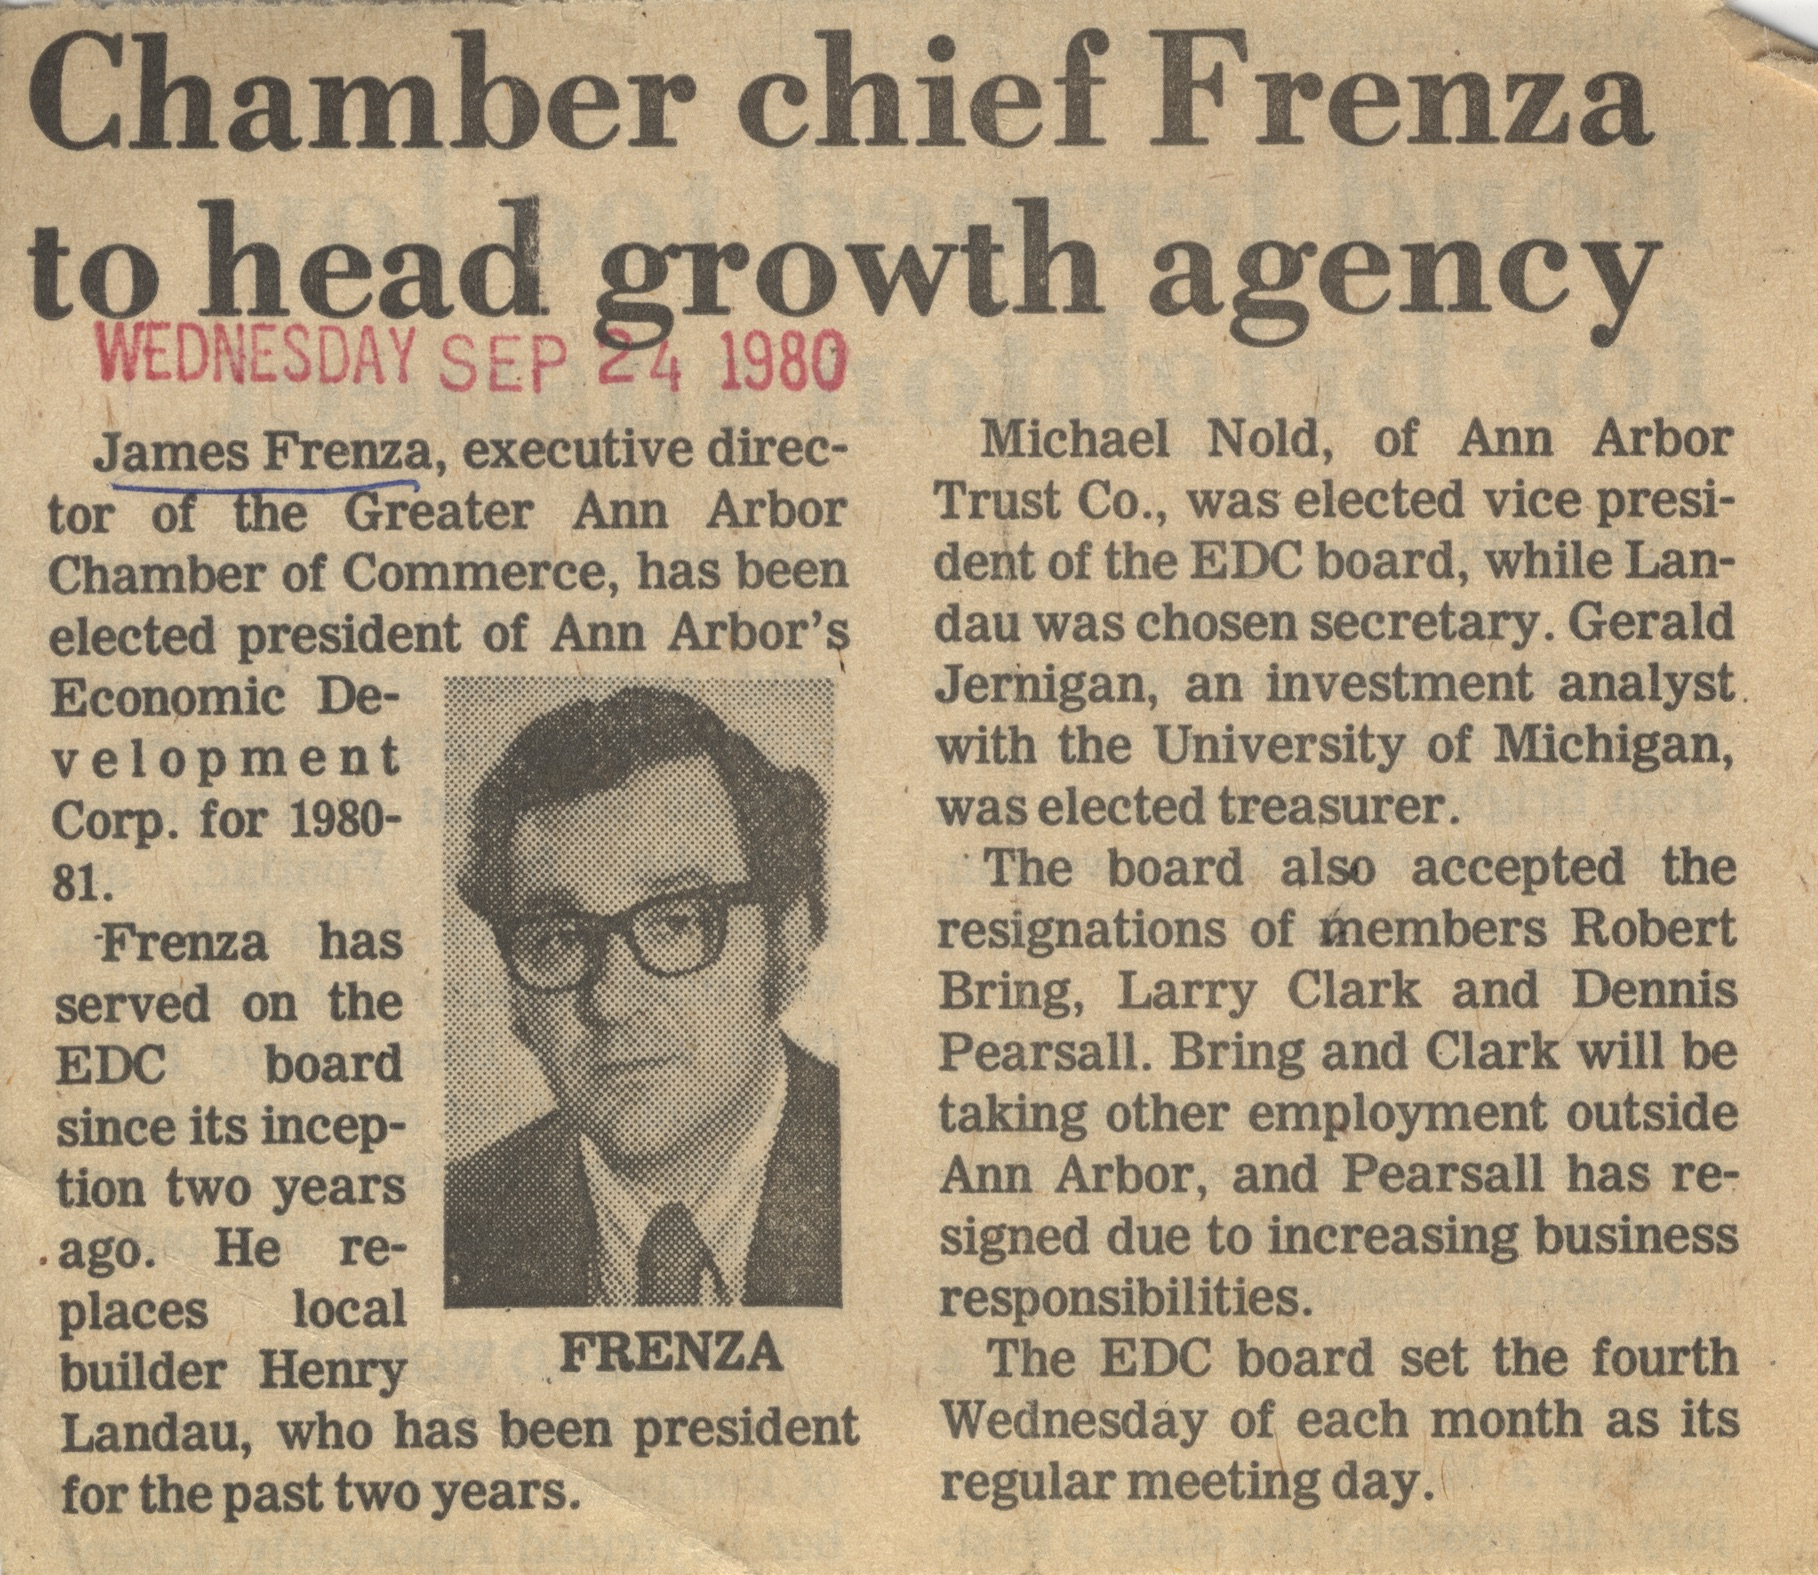 Chamber chief Frenza to head growth agency image